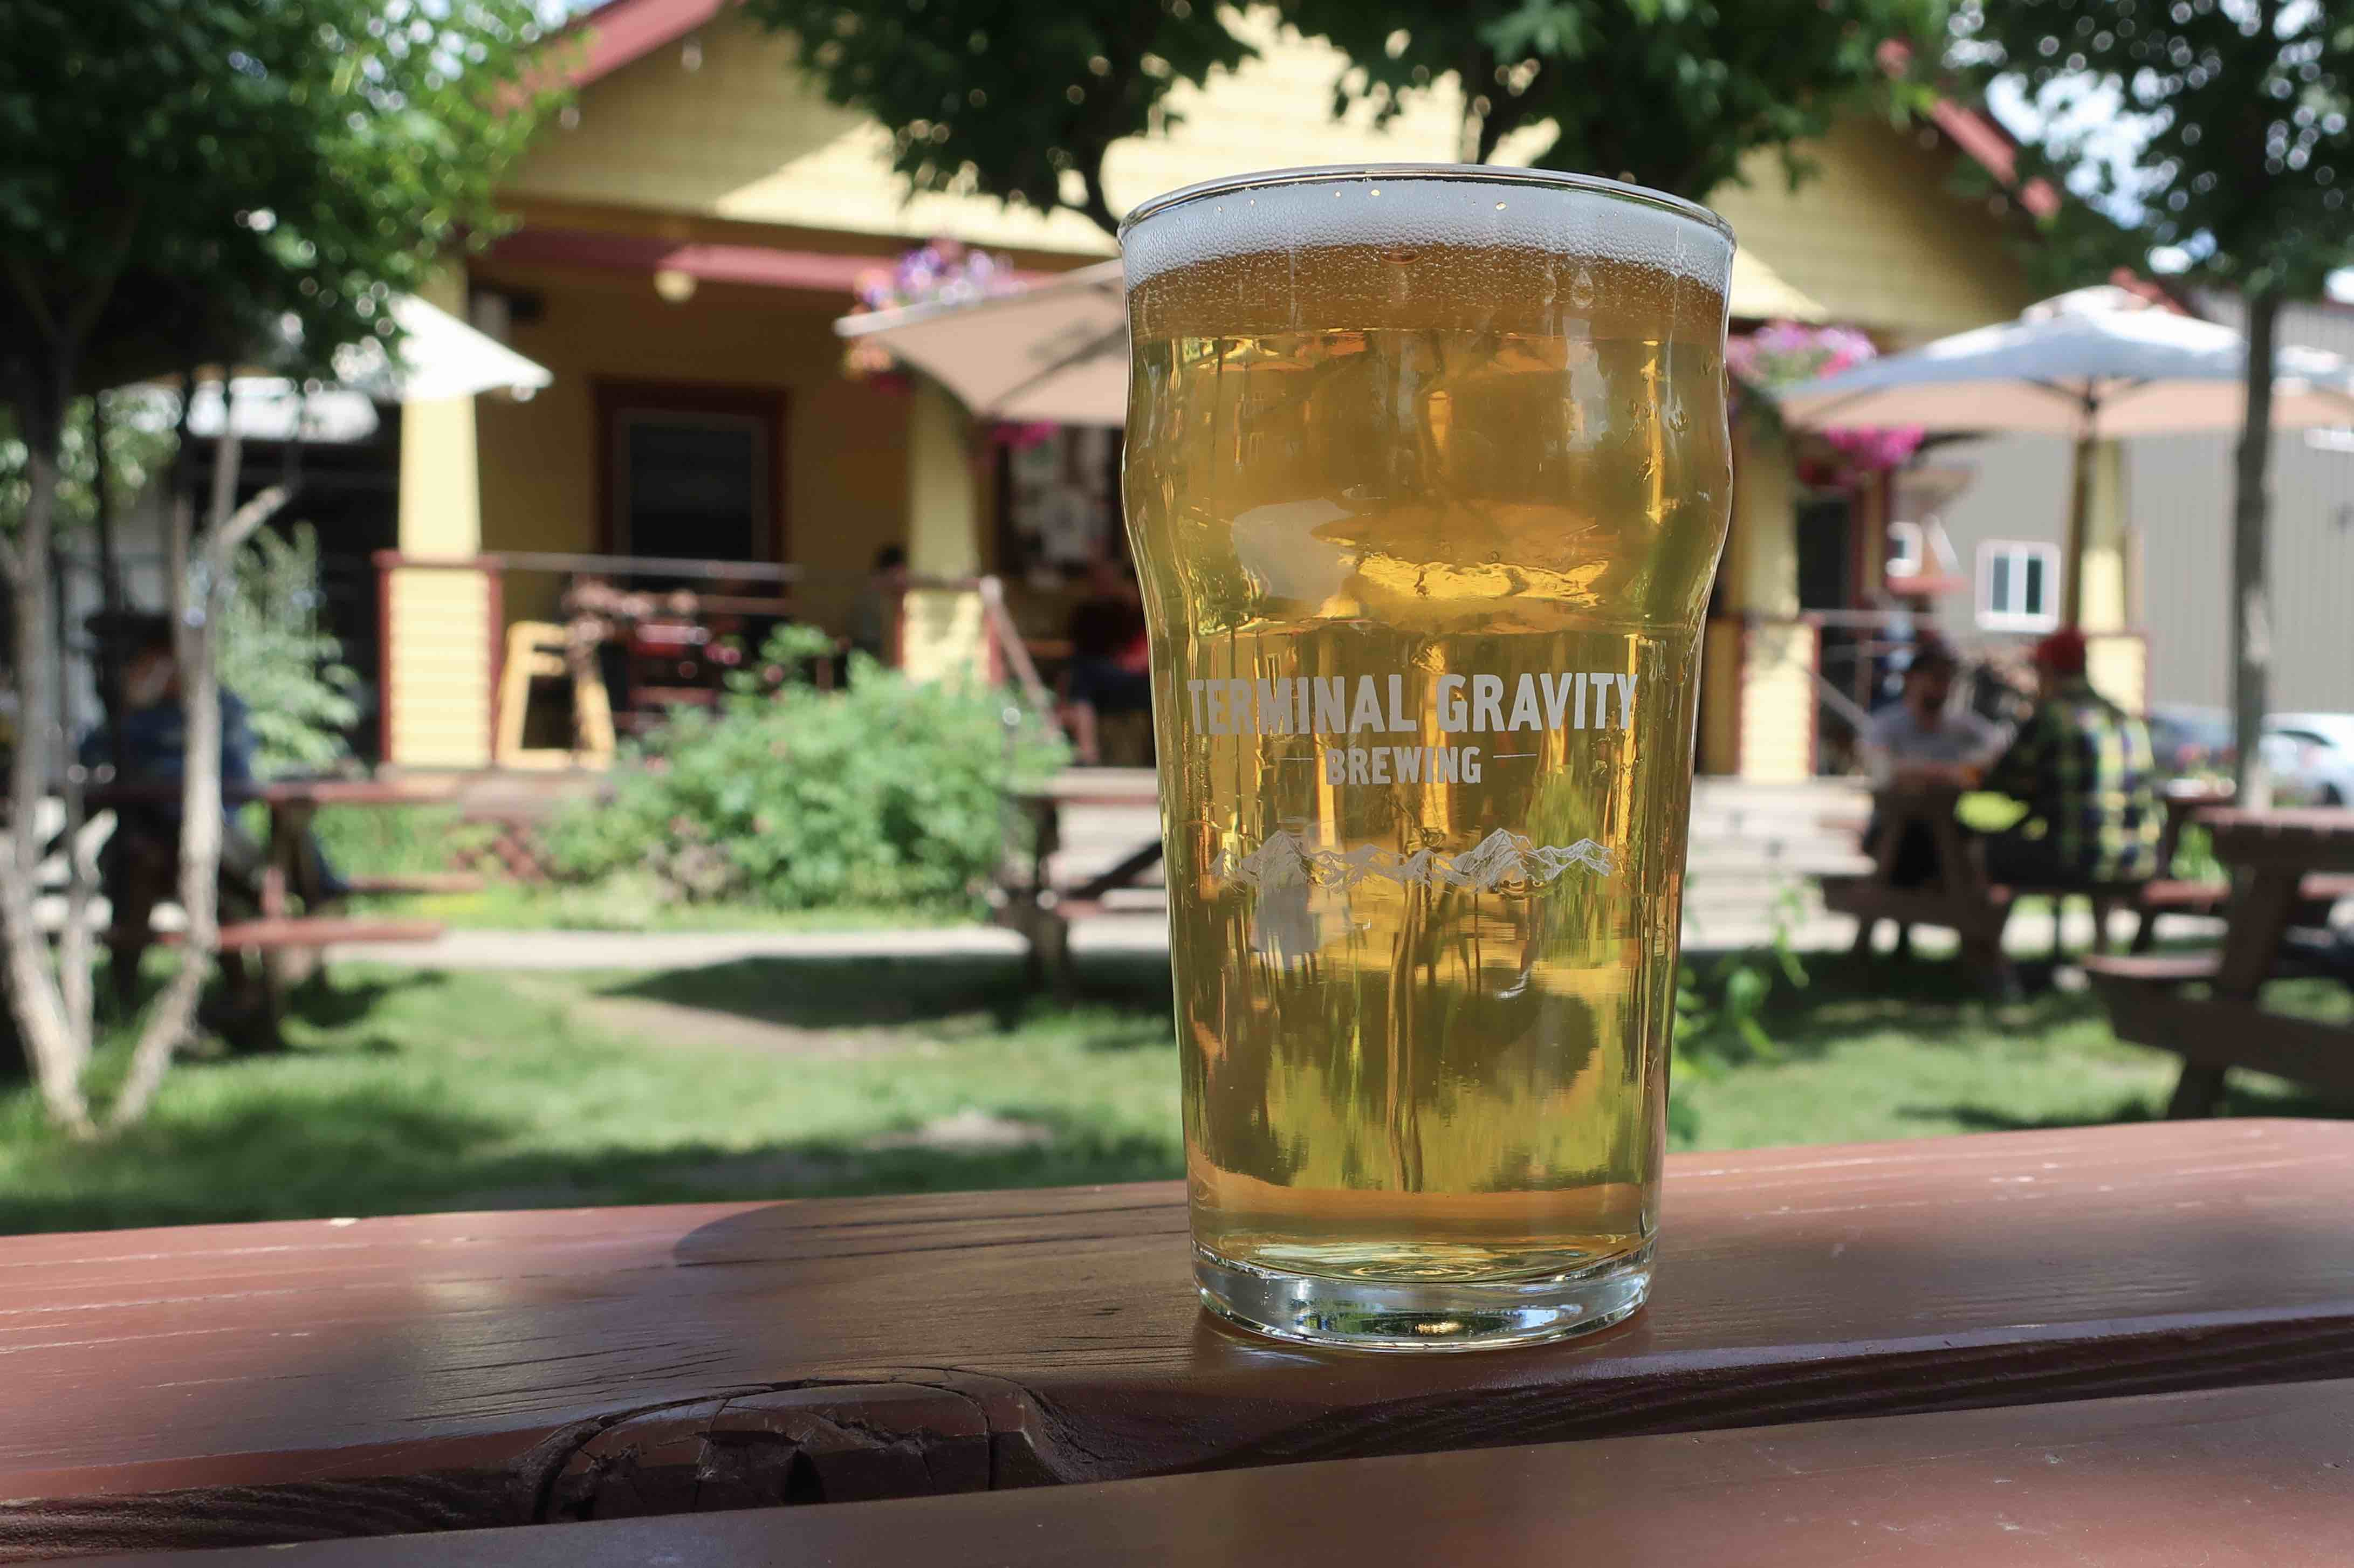 A pint in the beer garden at Terminal Gravity Brewing in Enterprise, Oregon.